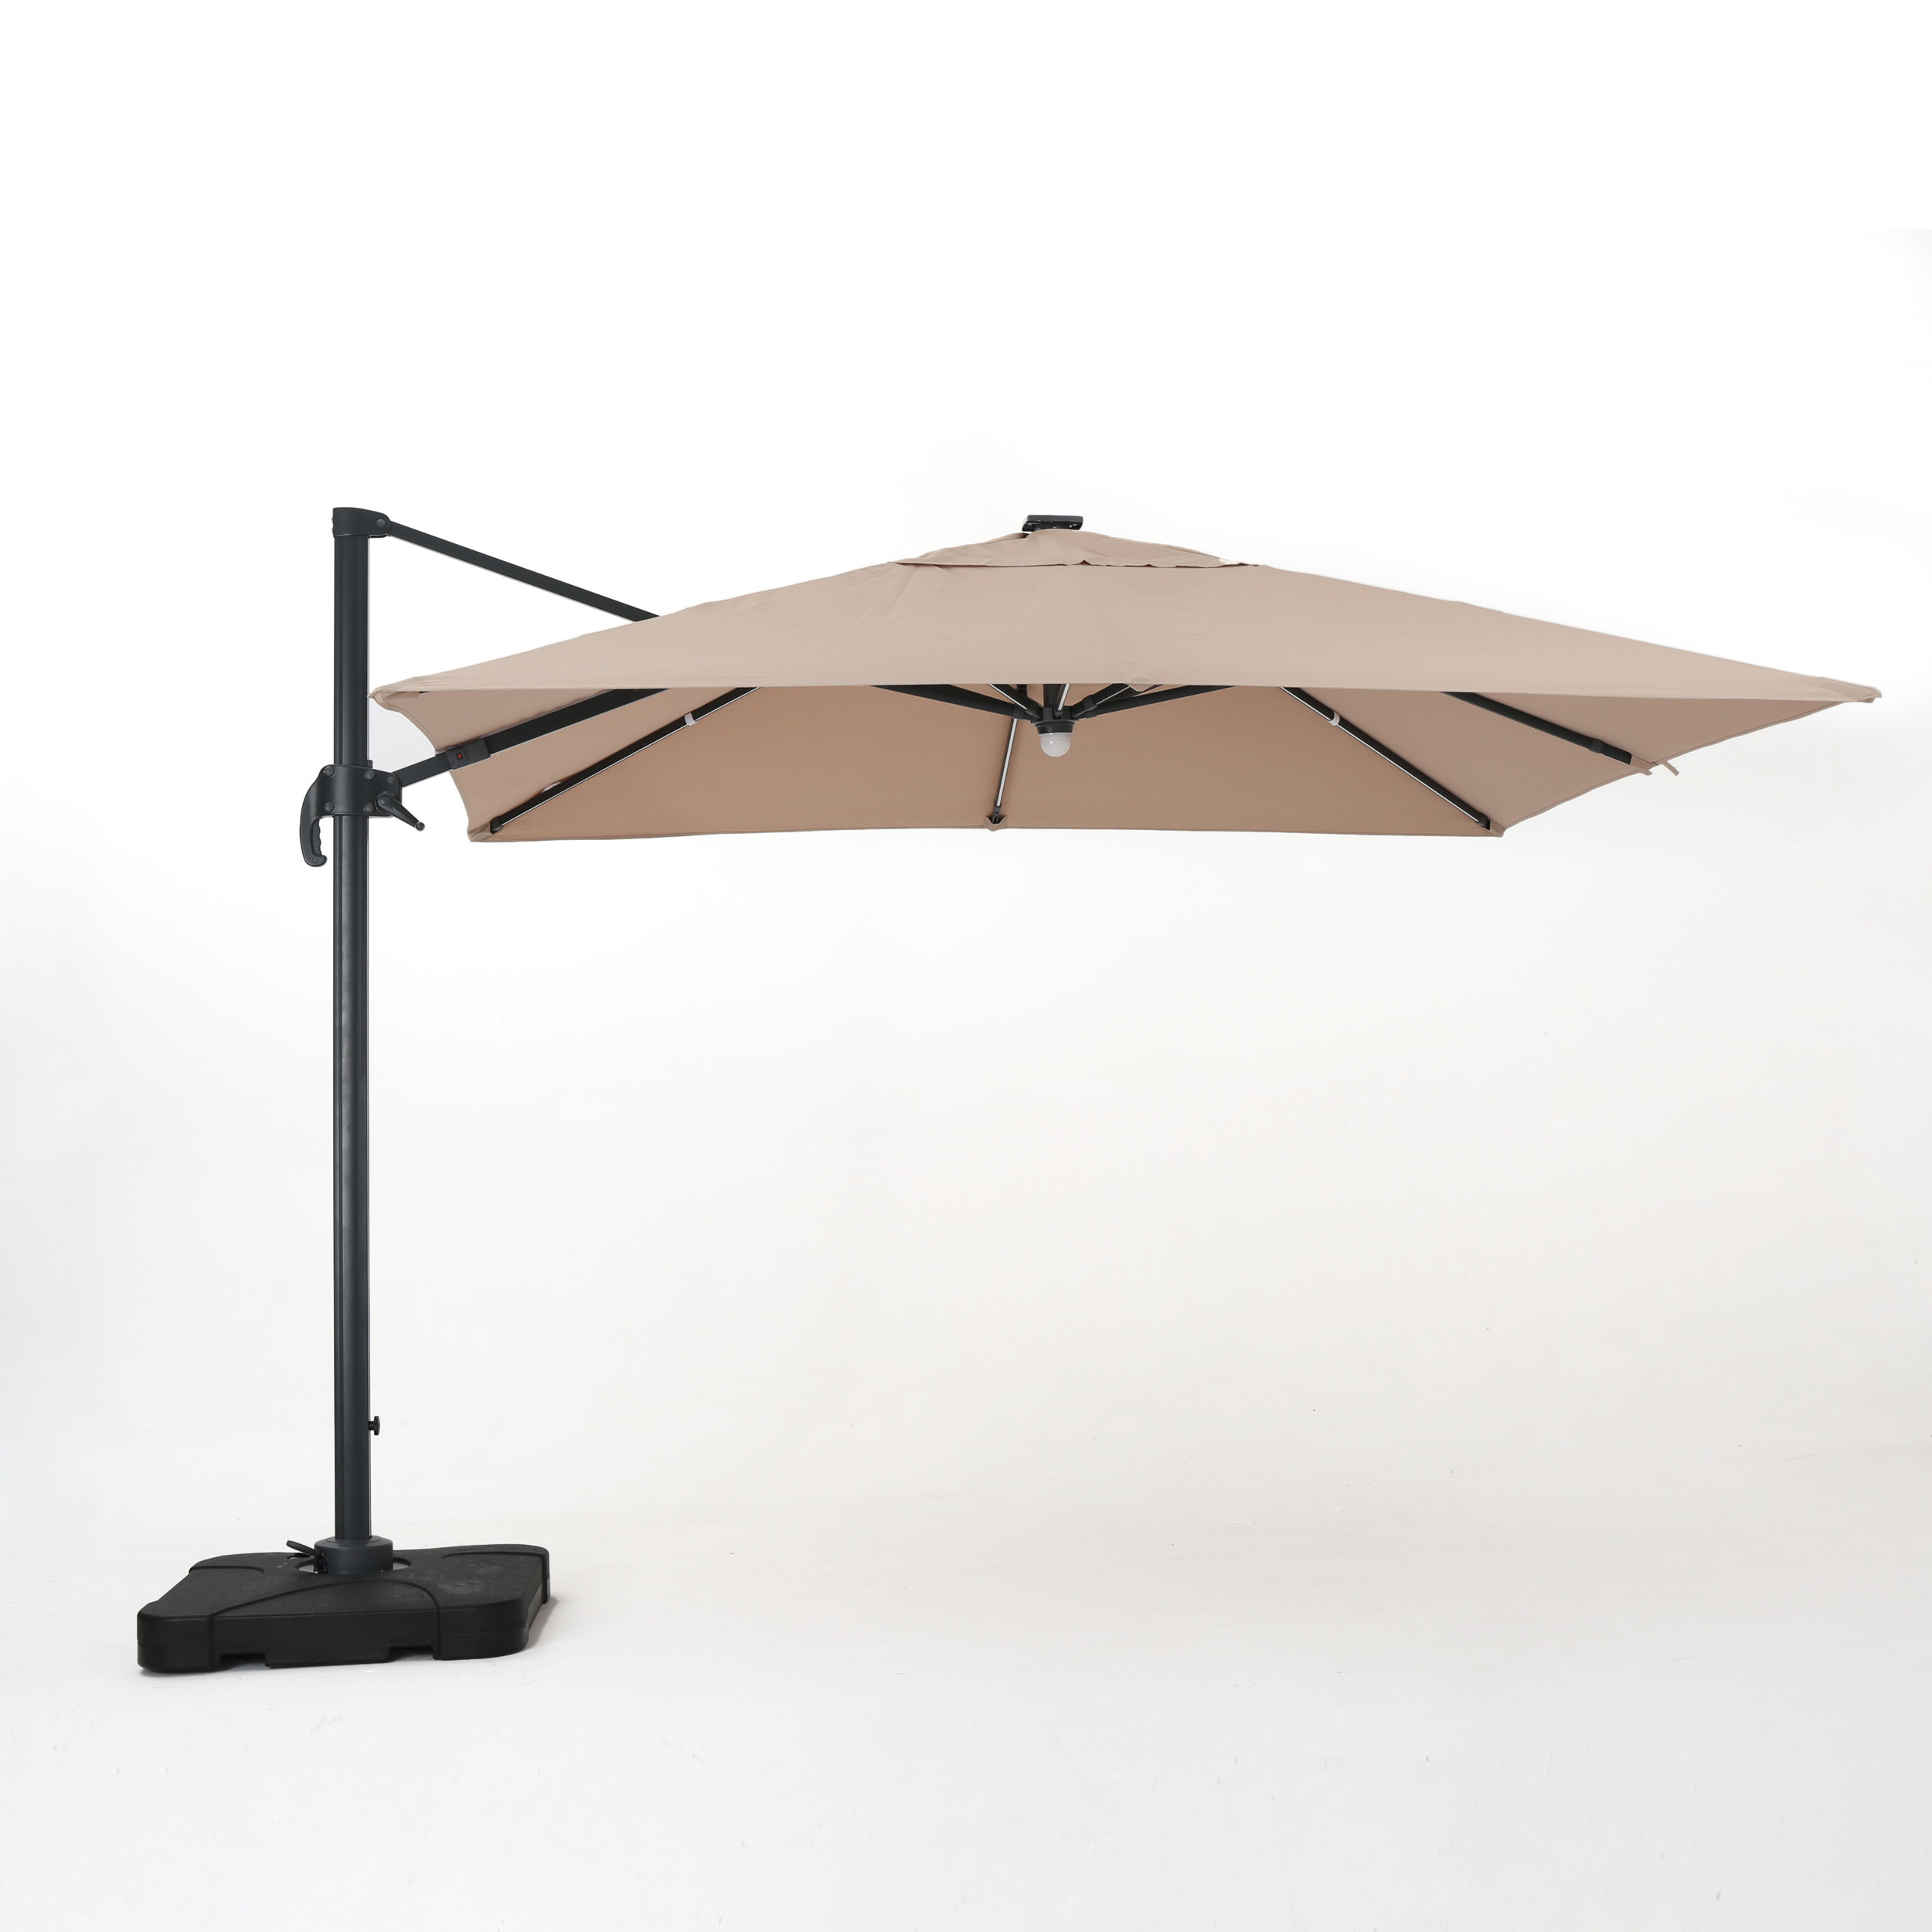 Jendayi Square Cantilever Umbrella For Most Recent Freda Cantilever Umbrellas (View 12 of 20)